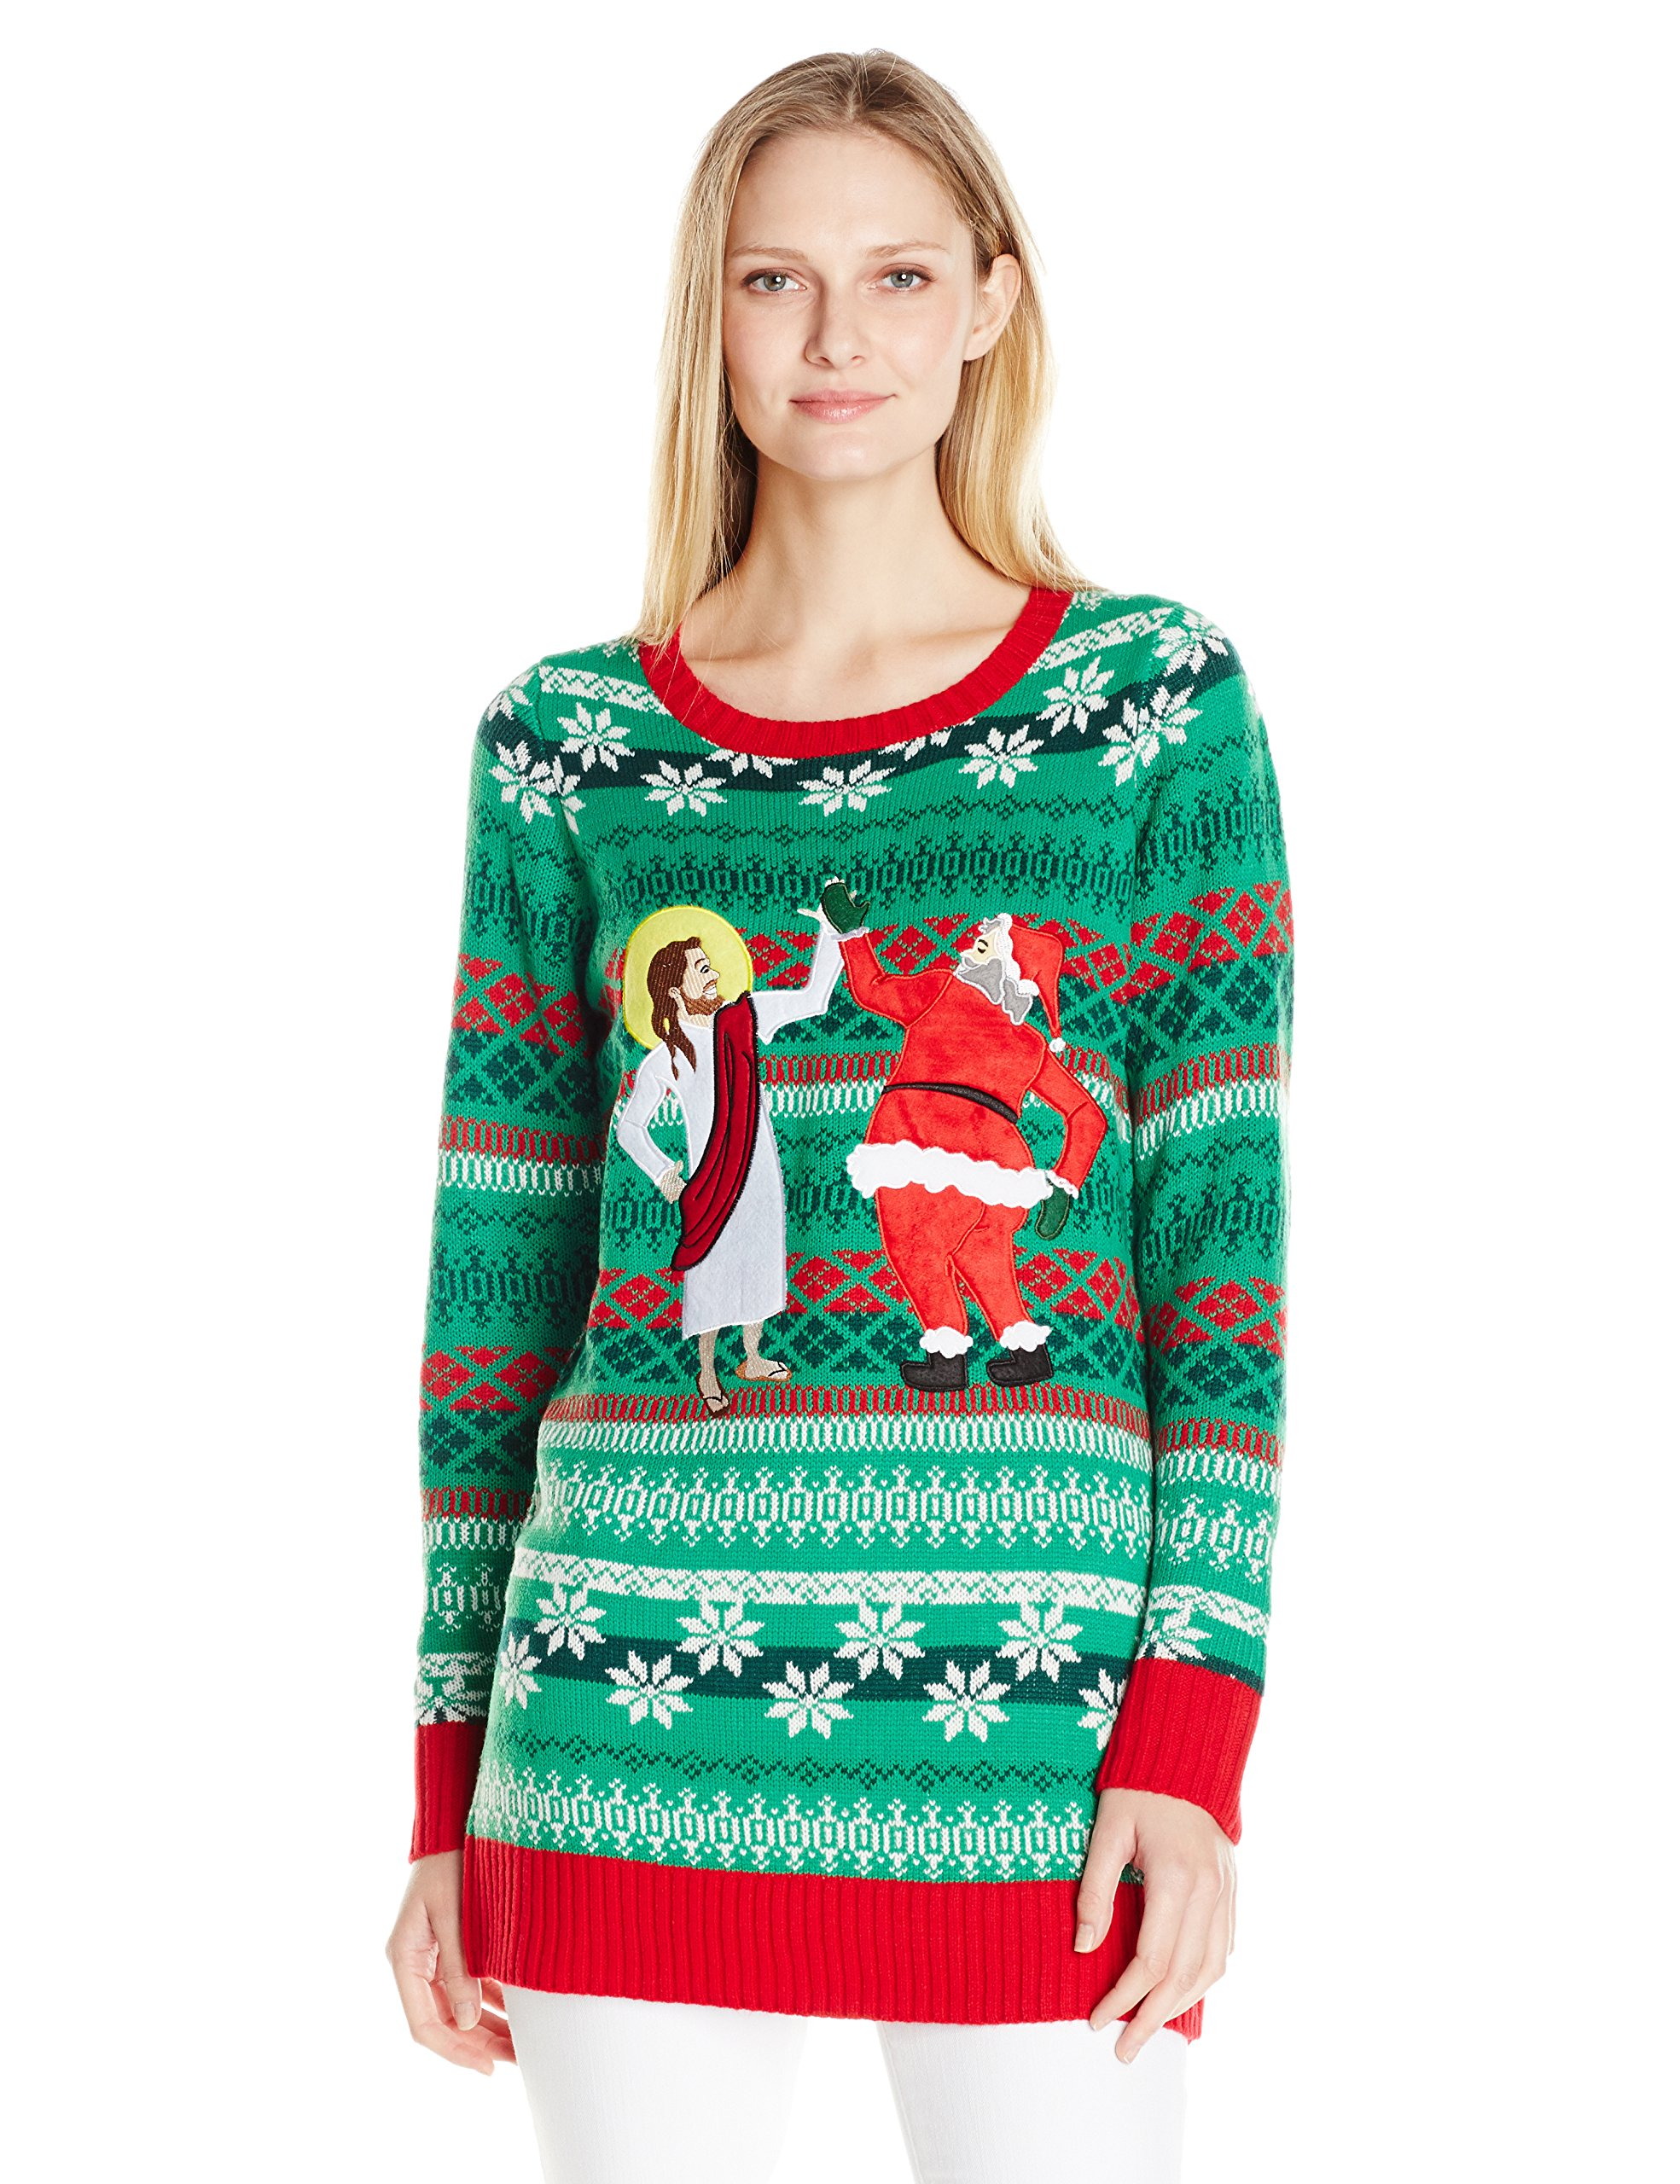 Blizzard Bay Women's Santa and Jesus BFF's Ugly Christmas Sweater Tunic, Green/Red, S